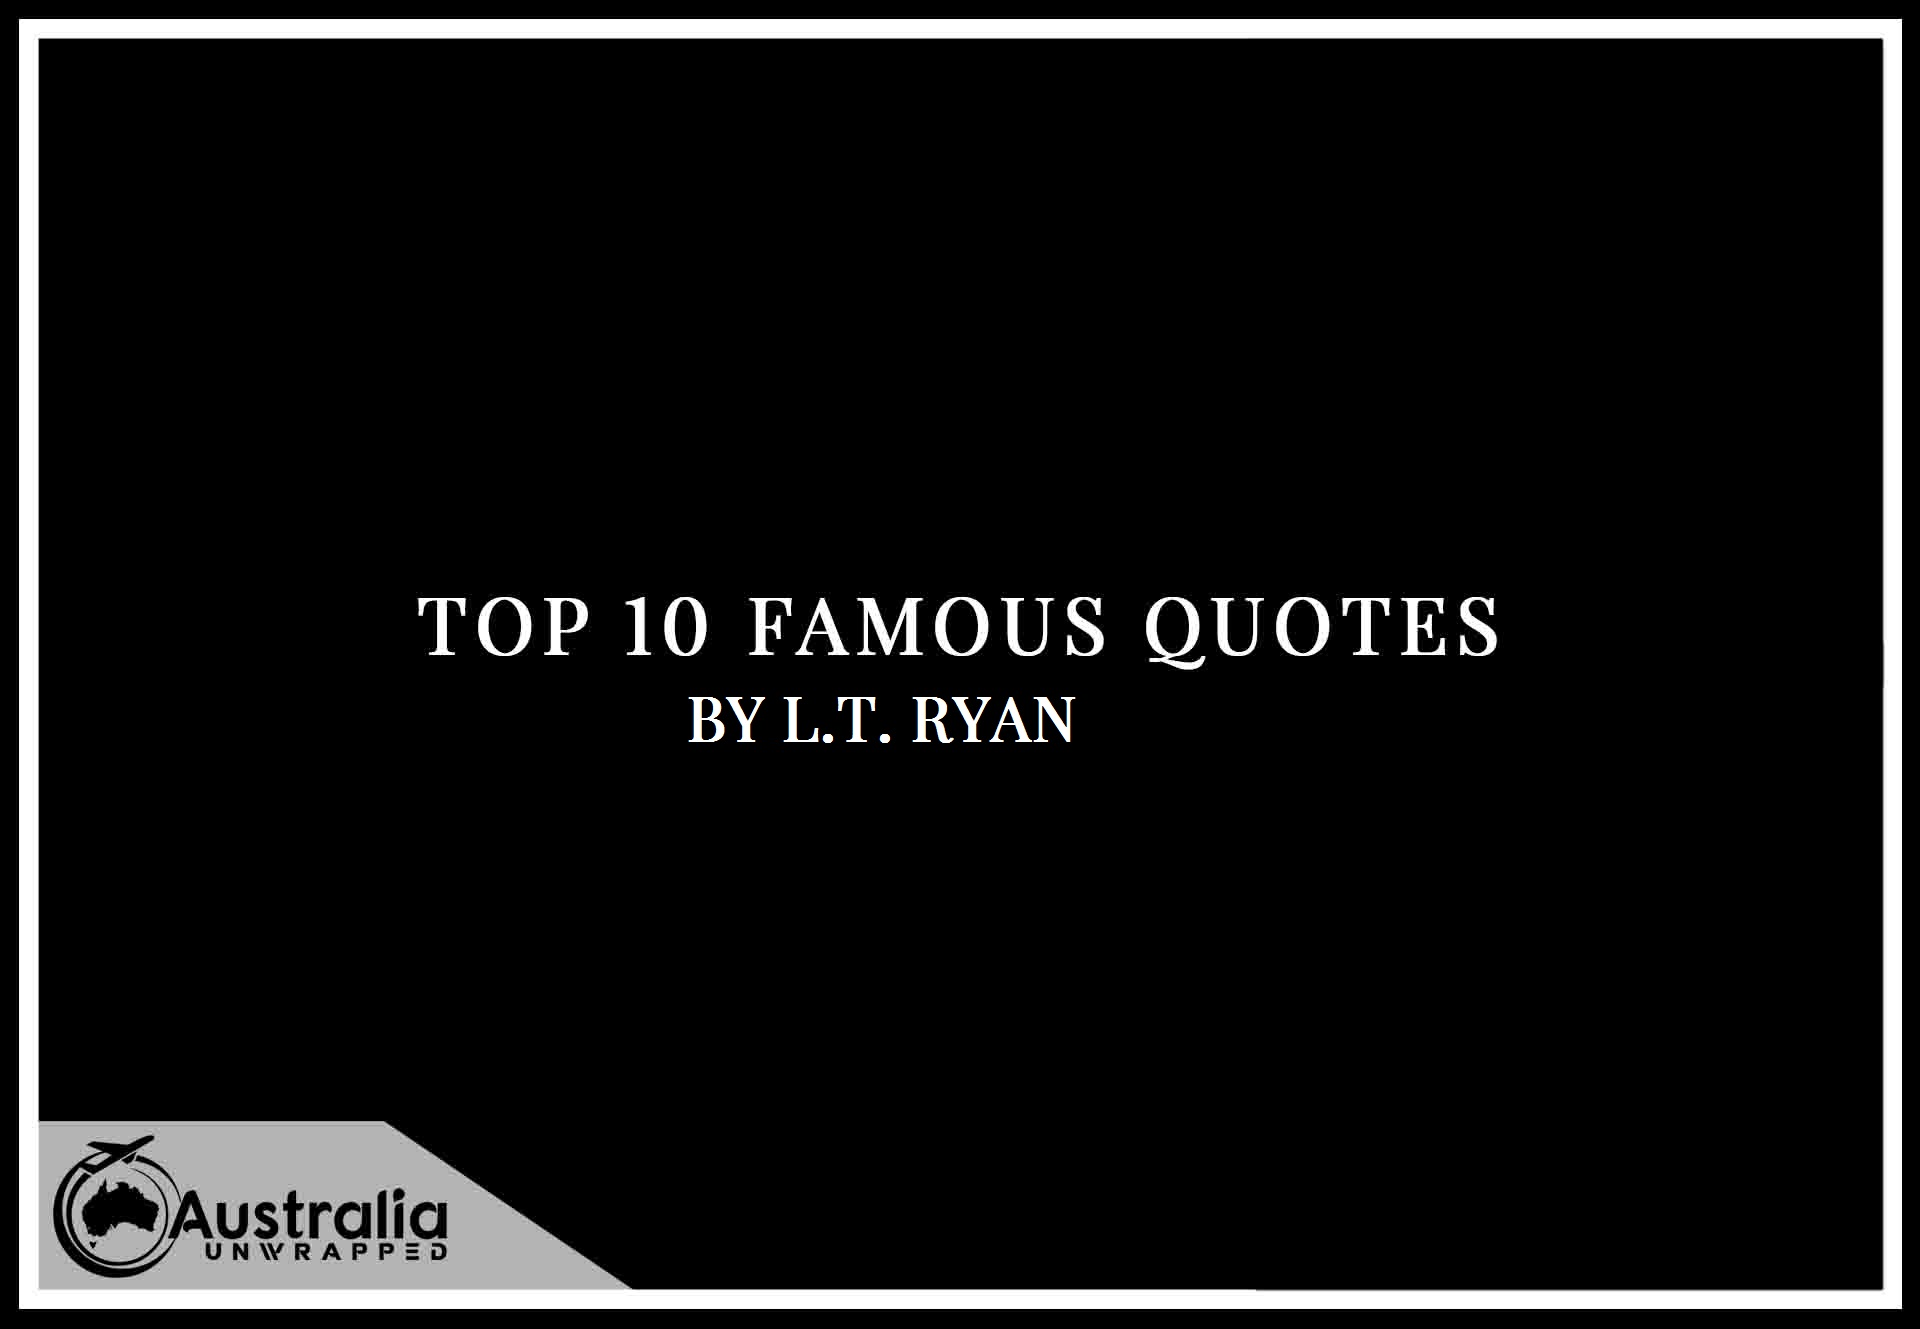 L.T. Ryan's Top 10 Popular and Famous Quotes